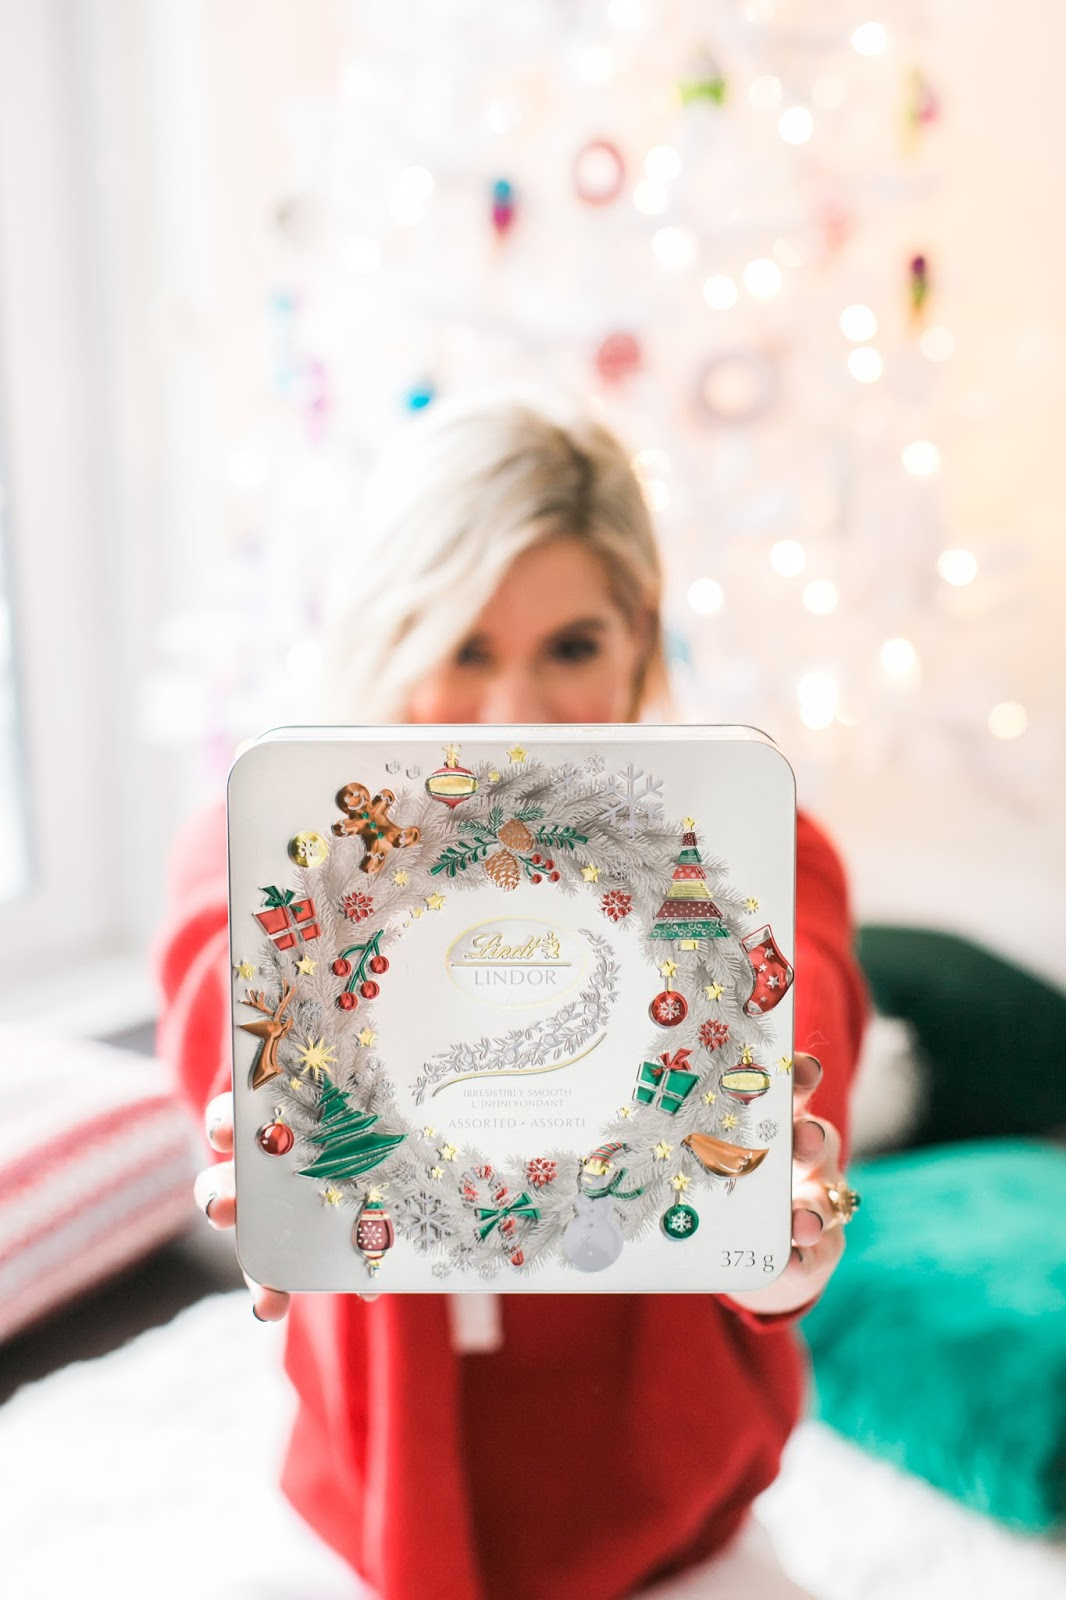 Bijuleni - Holiday Gift Guide For Her With Holt Renfrew Centre - Purdys Chocoalate box